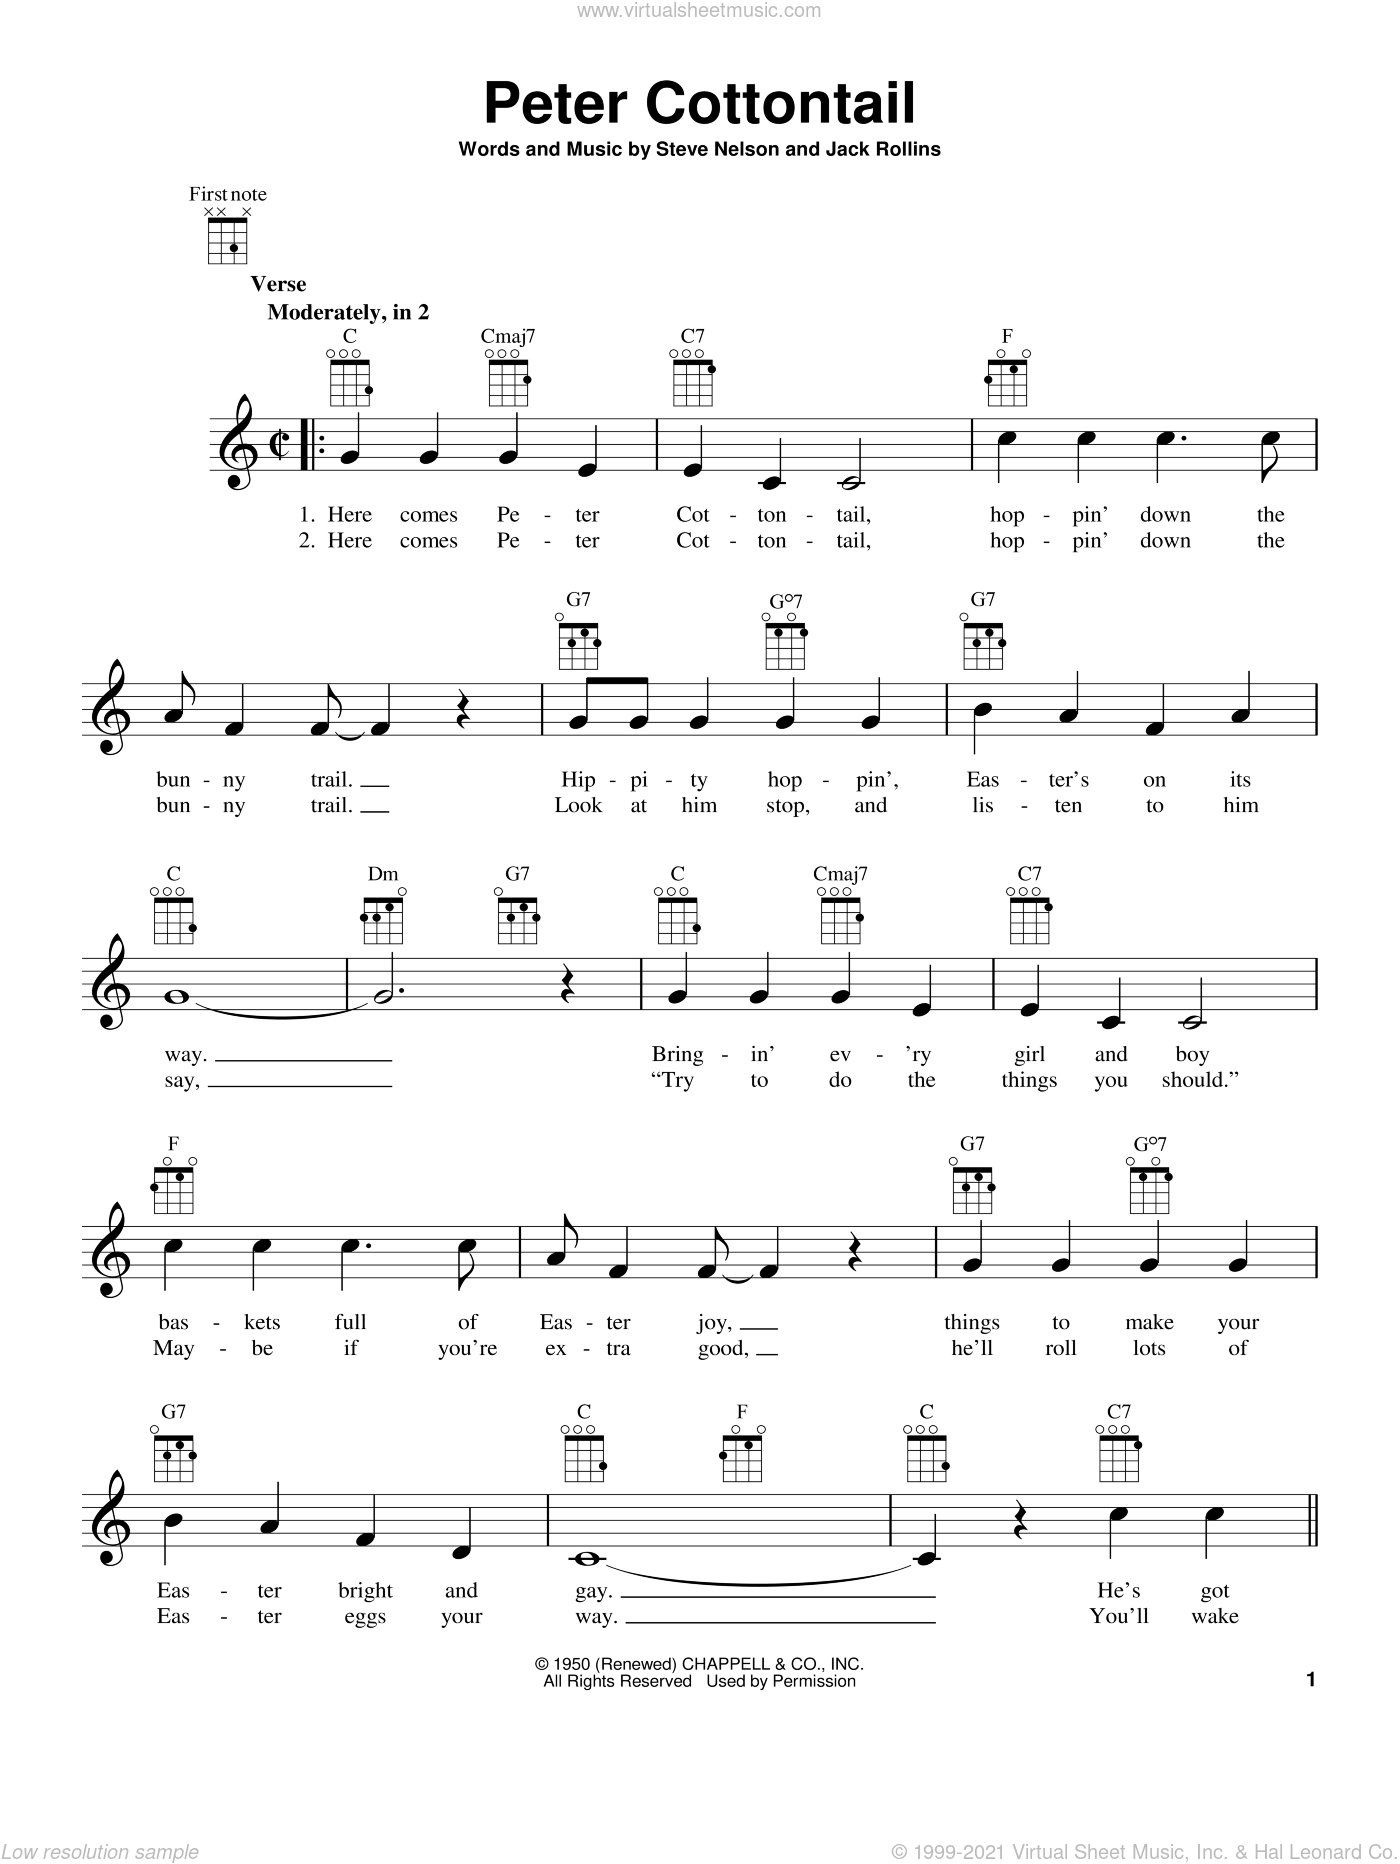 Peter Cottontail sheet music for ukulele by Jack Rollins